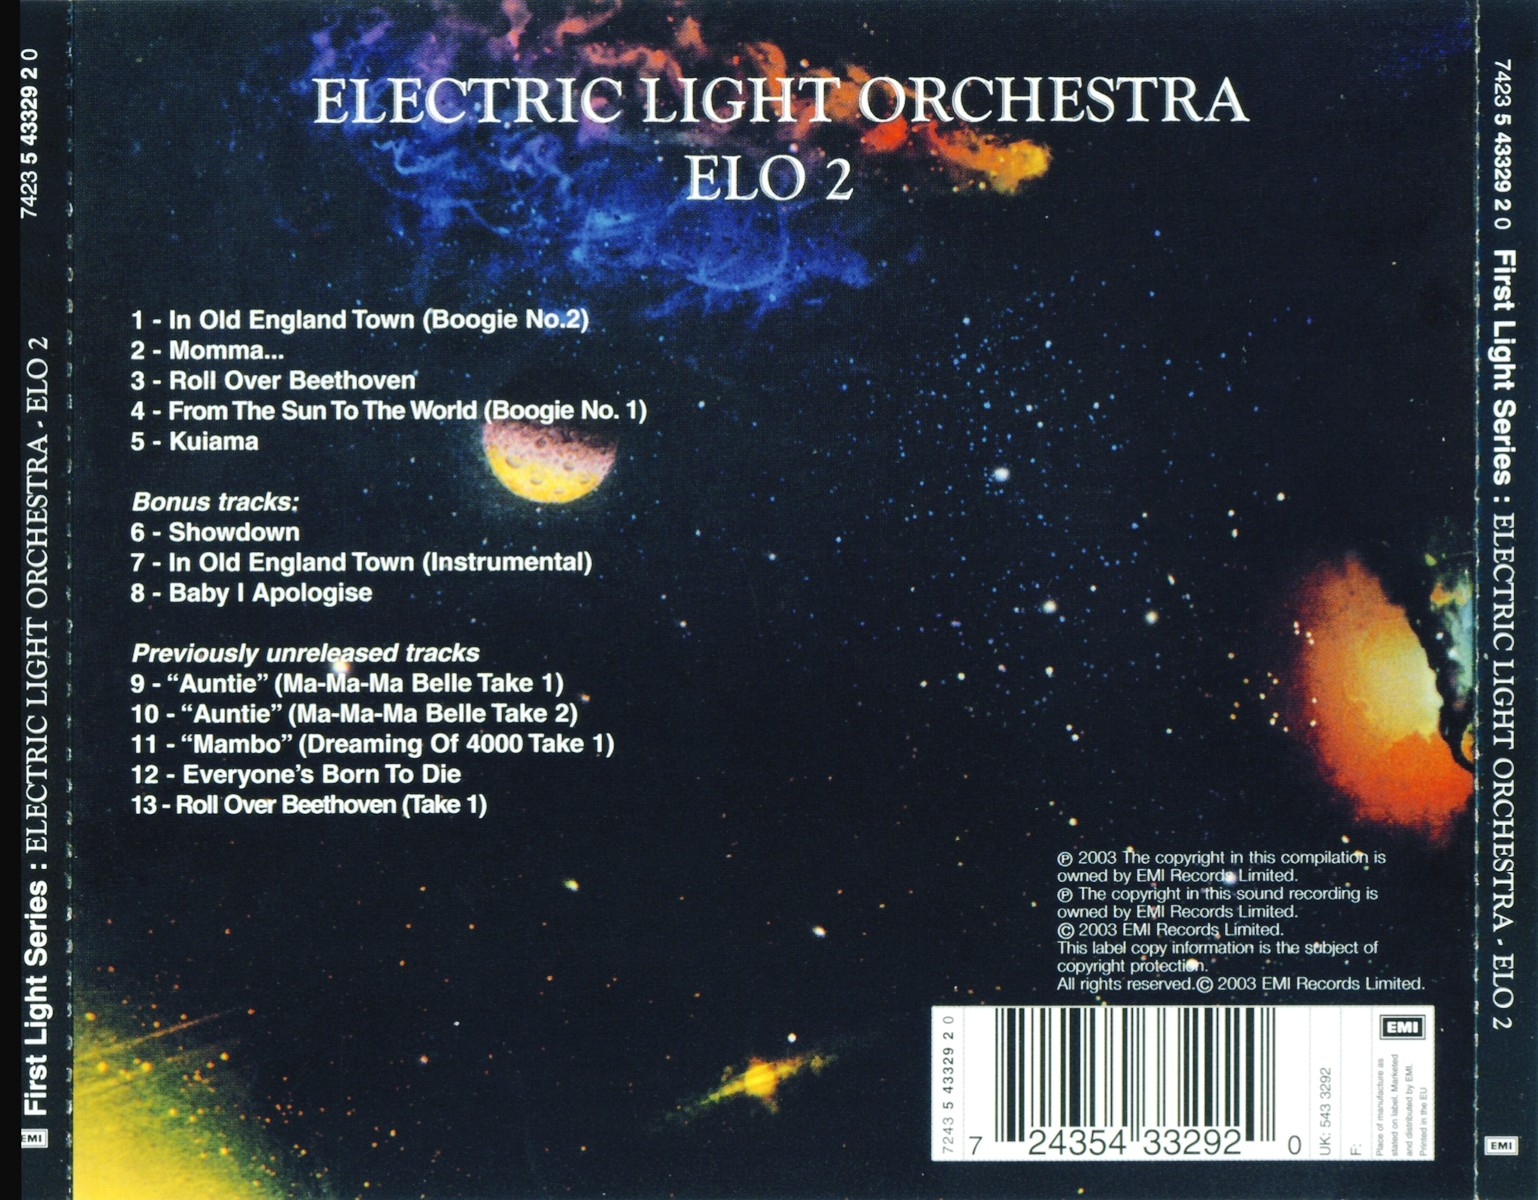 Listen to music by electric light orchestra on pandora